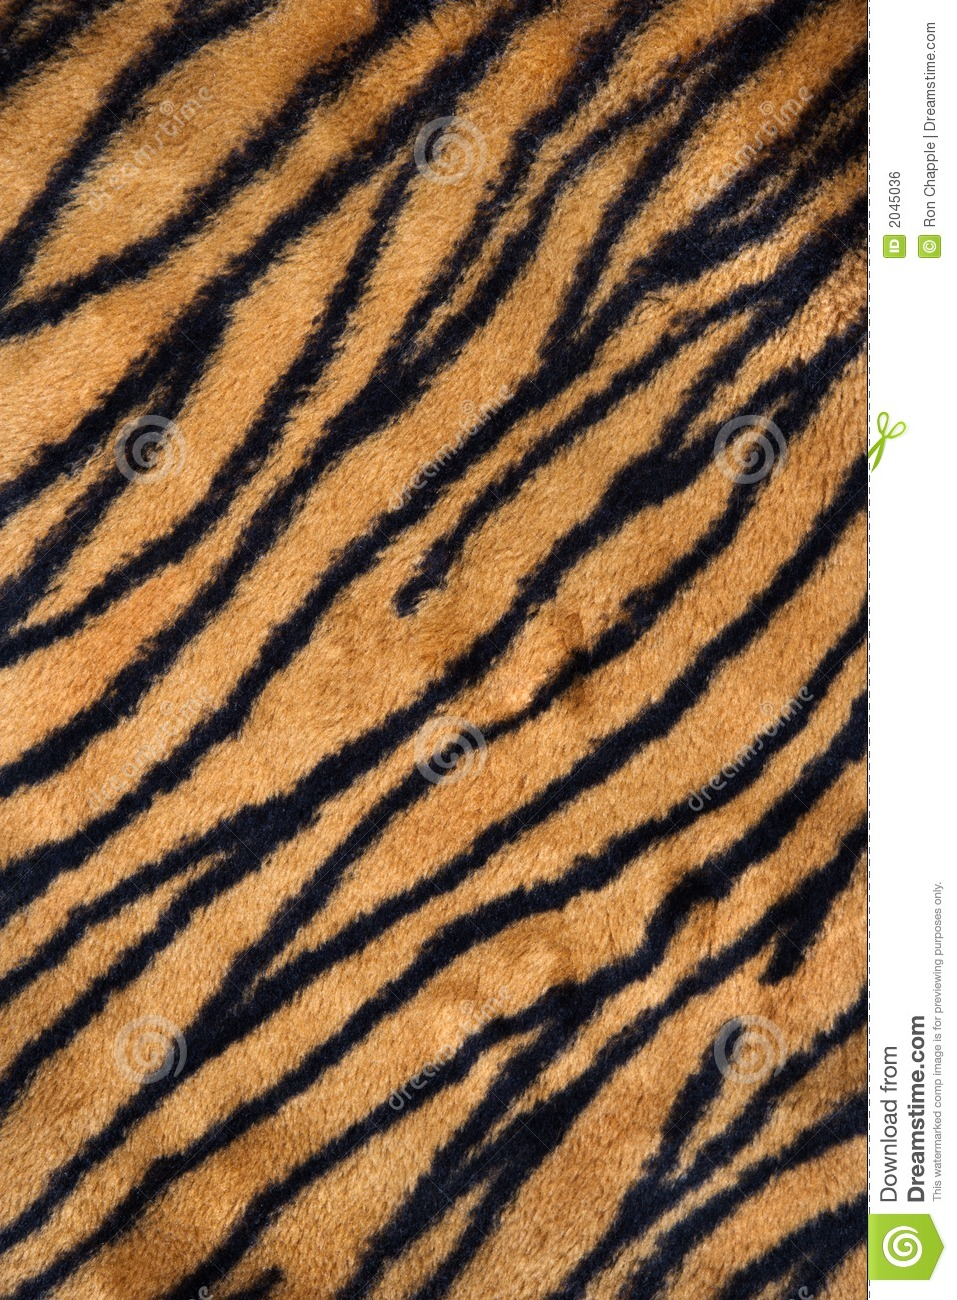 Tiger Print Carpet Stock Photo Image Of Background